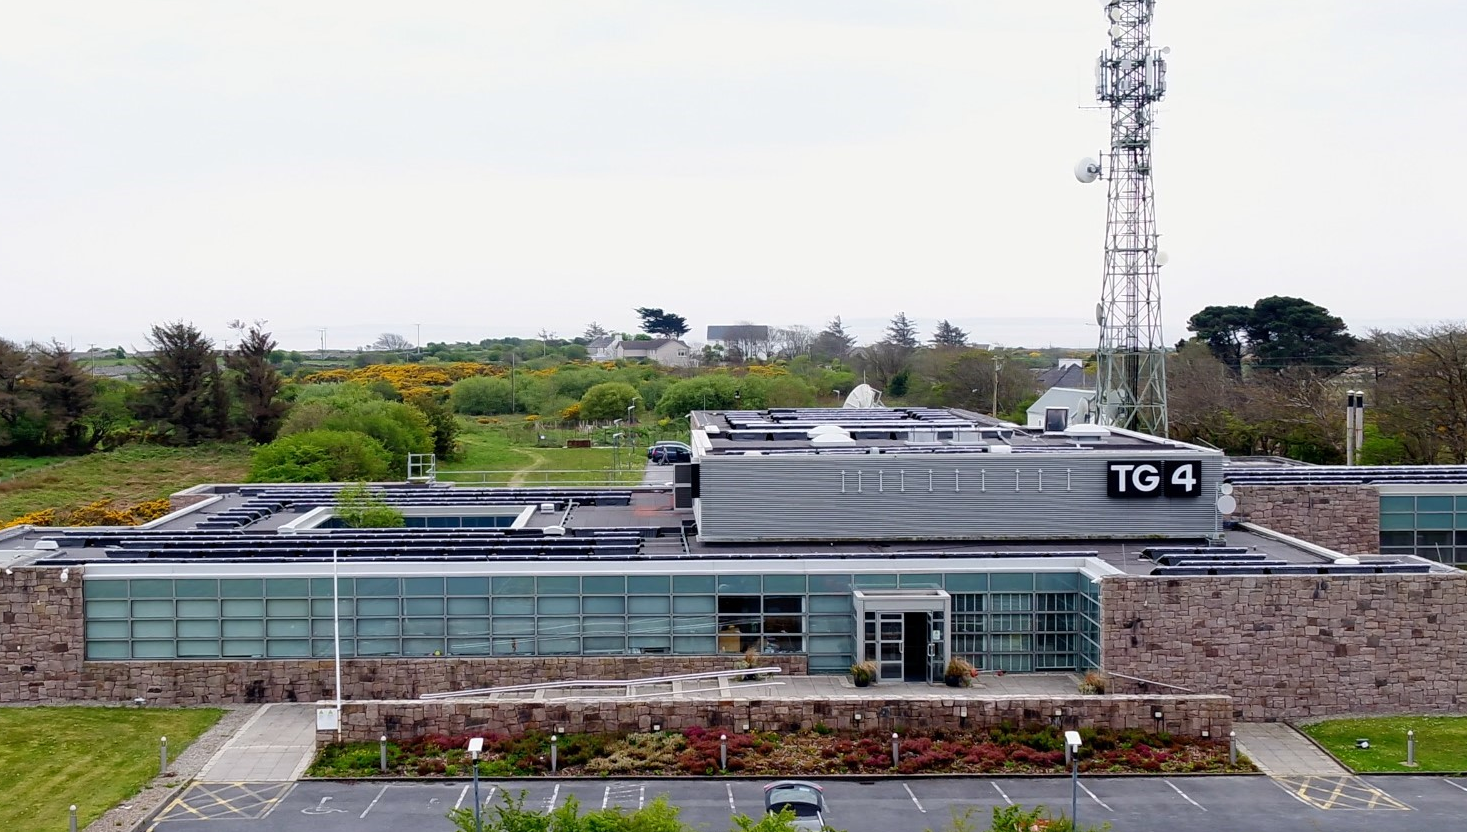 Additional funding of €3.5m for TG4 in 2021